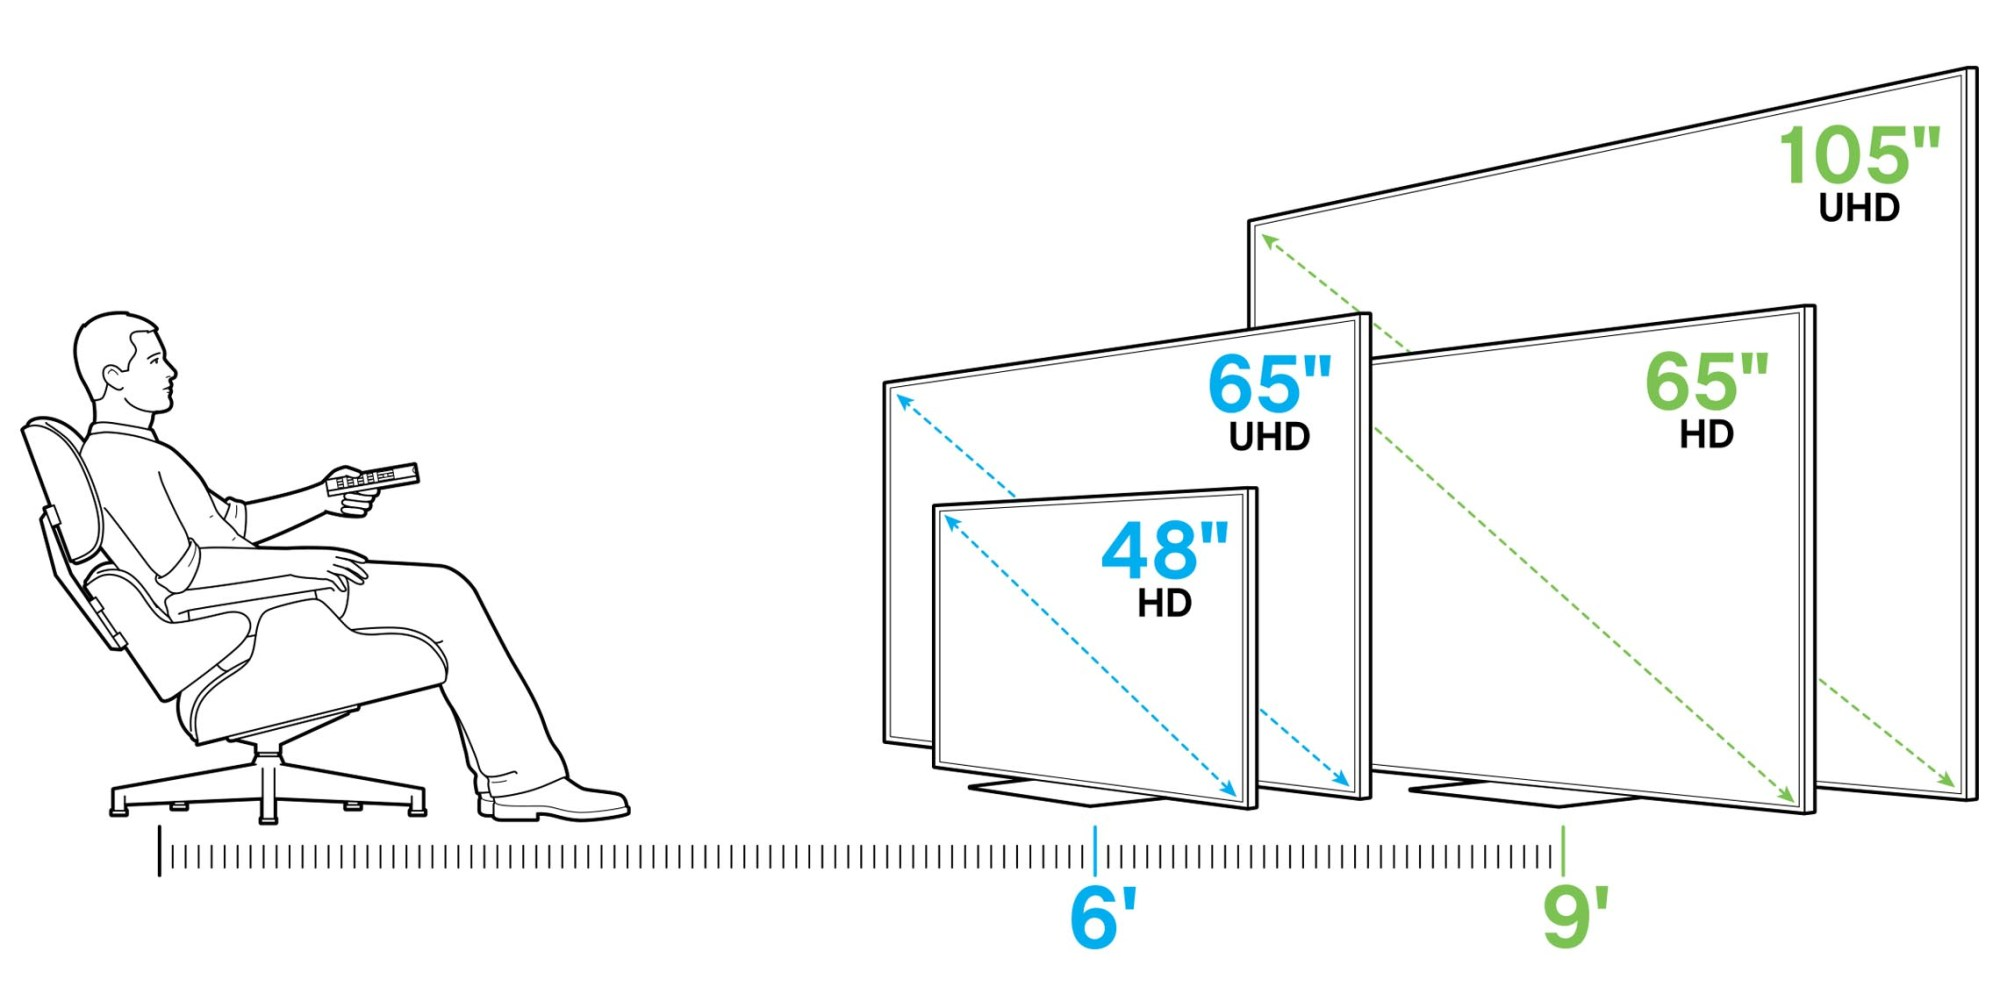 hight resolution of illustration of 1080p and uhd tv size based on 6 and 9 foot viewing